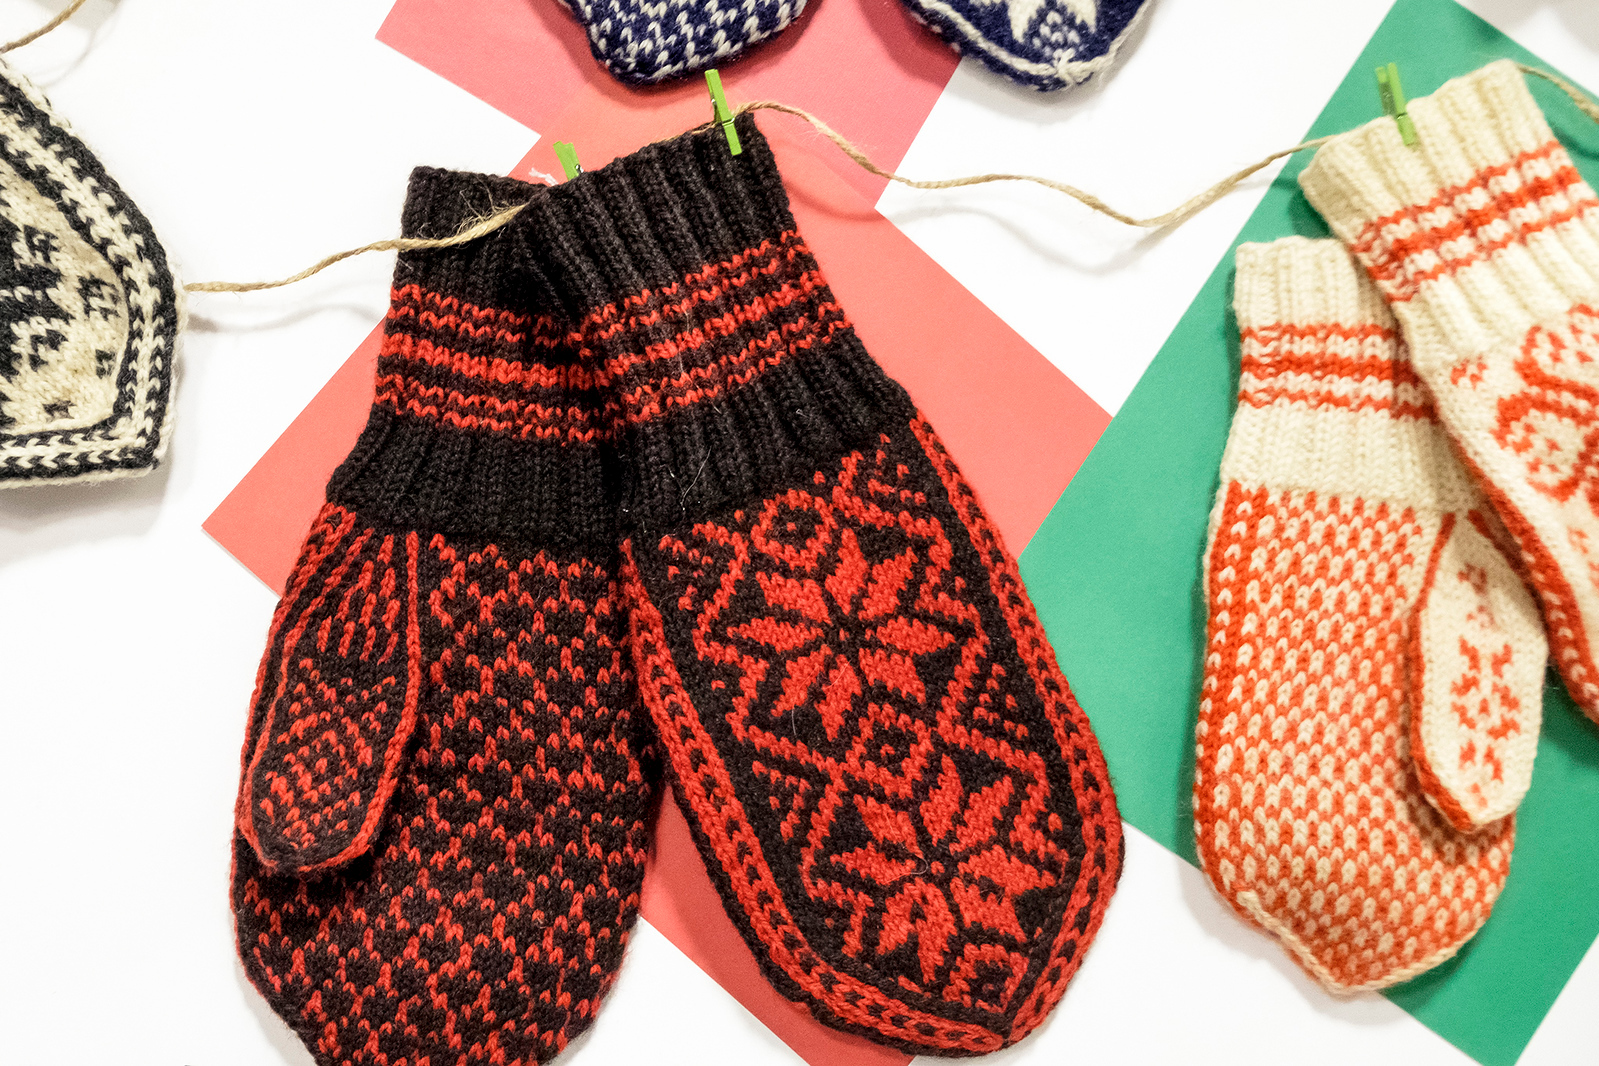 Selbu Mittens at Livsreise